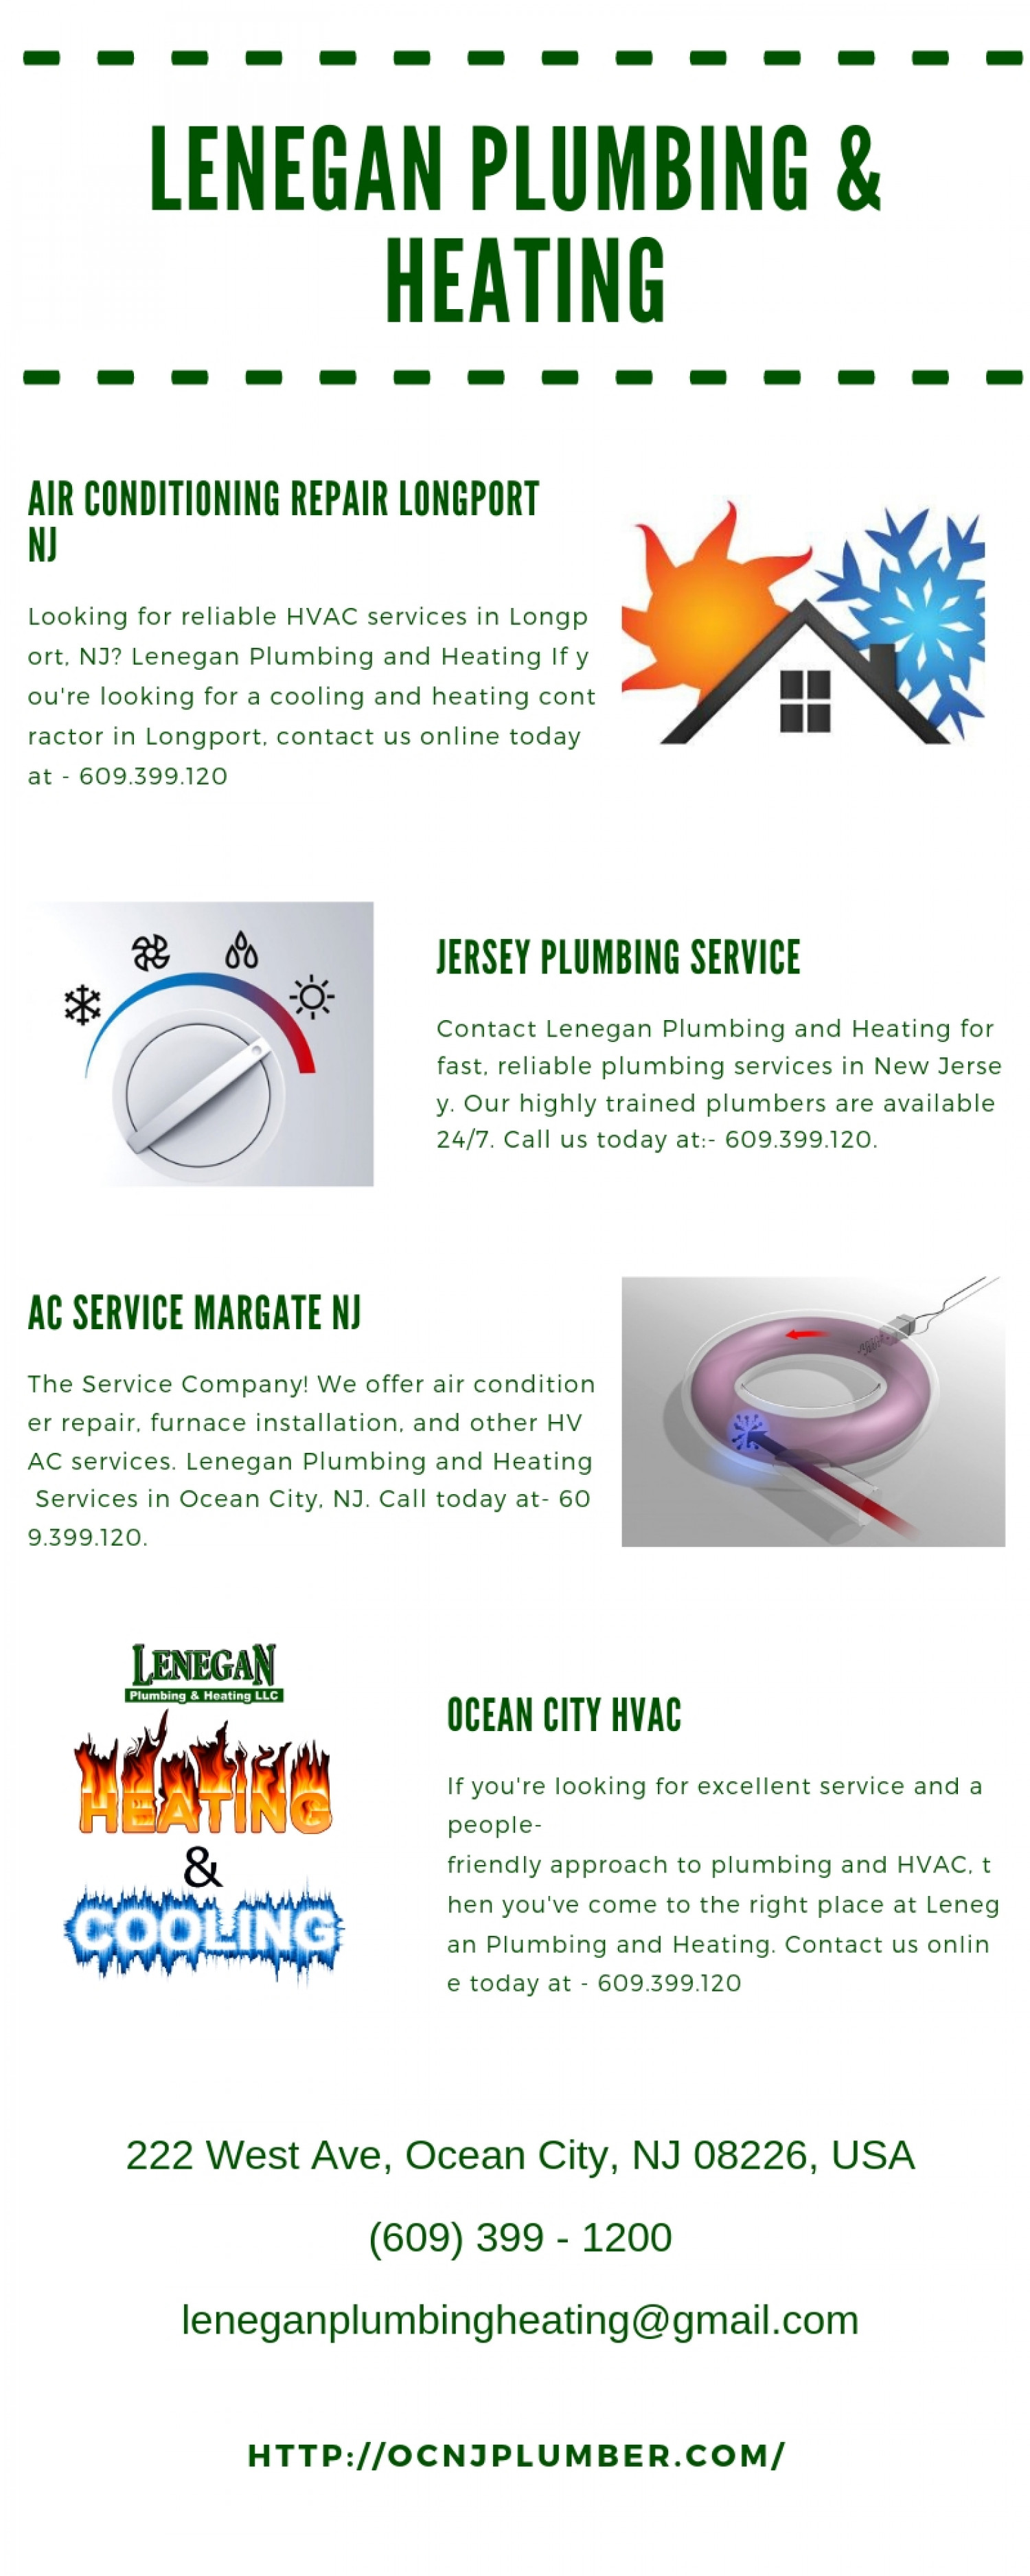 AC Service Margate NJ Infographic